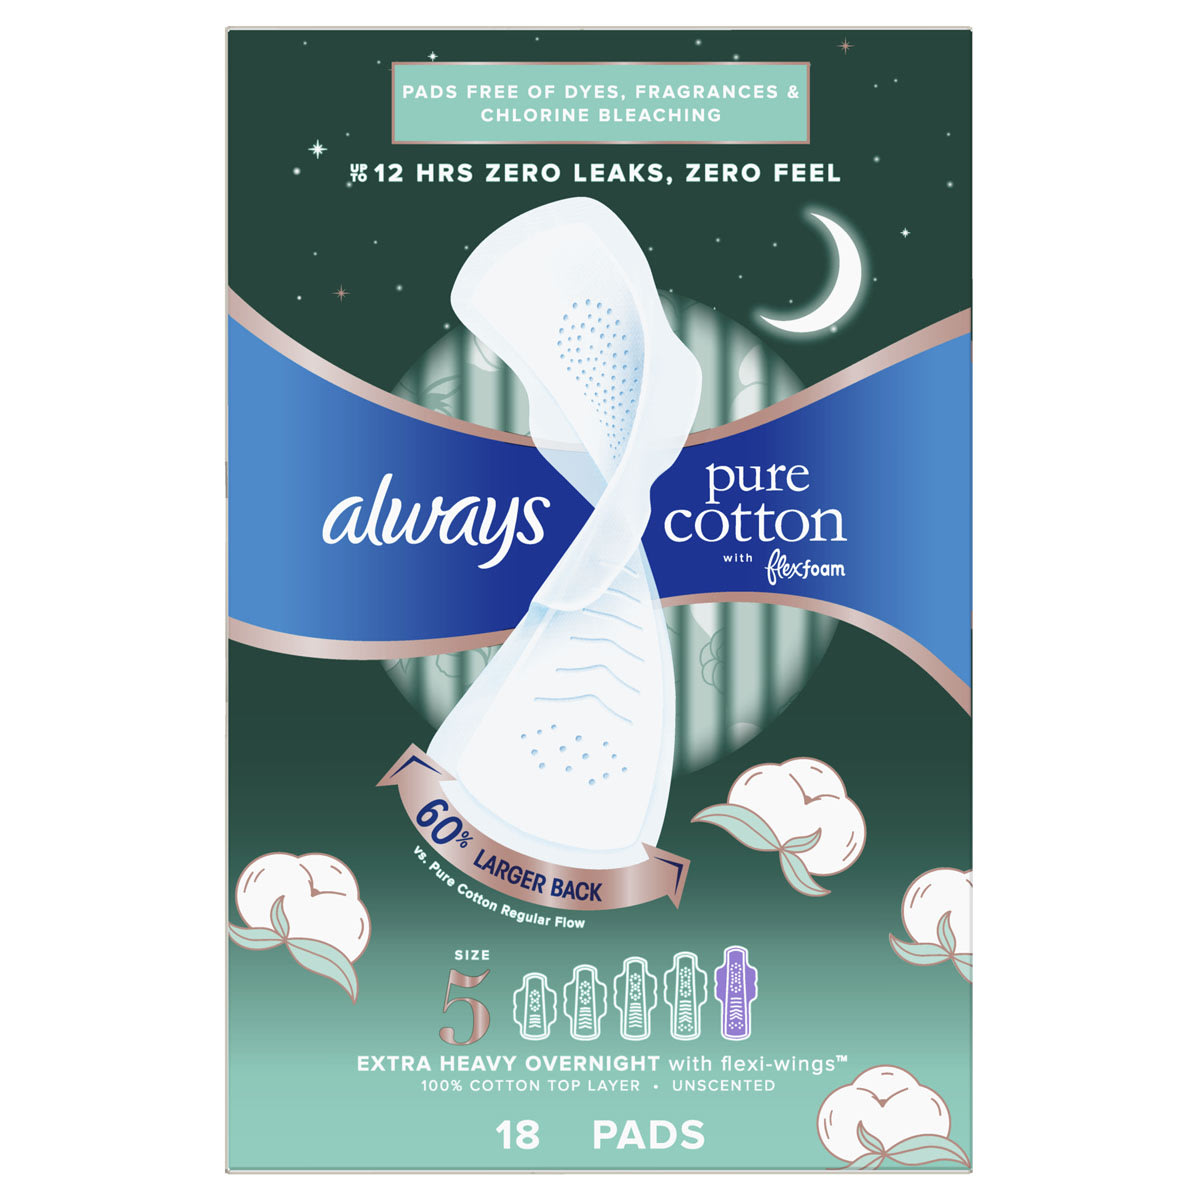 Always Pure Cotton with FlexFoam Overnight  Size 5 Extra Heavy Flow Pads with Wings